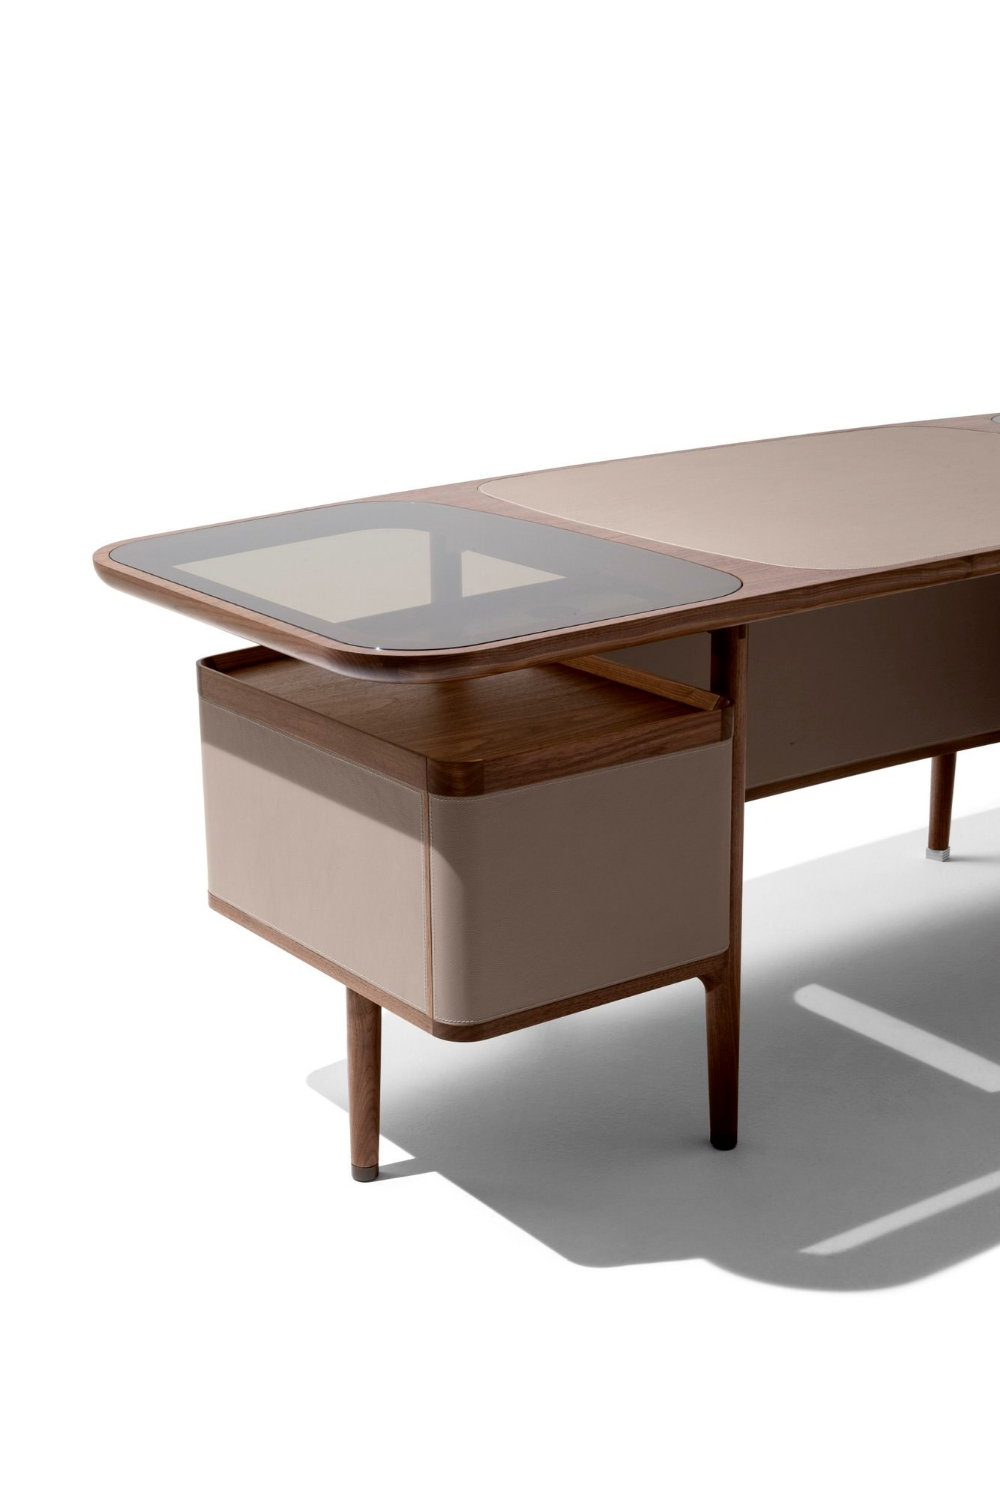 Rectangular wooden writing desk MOGUL By design